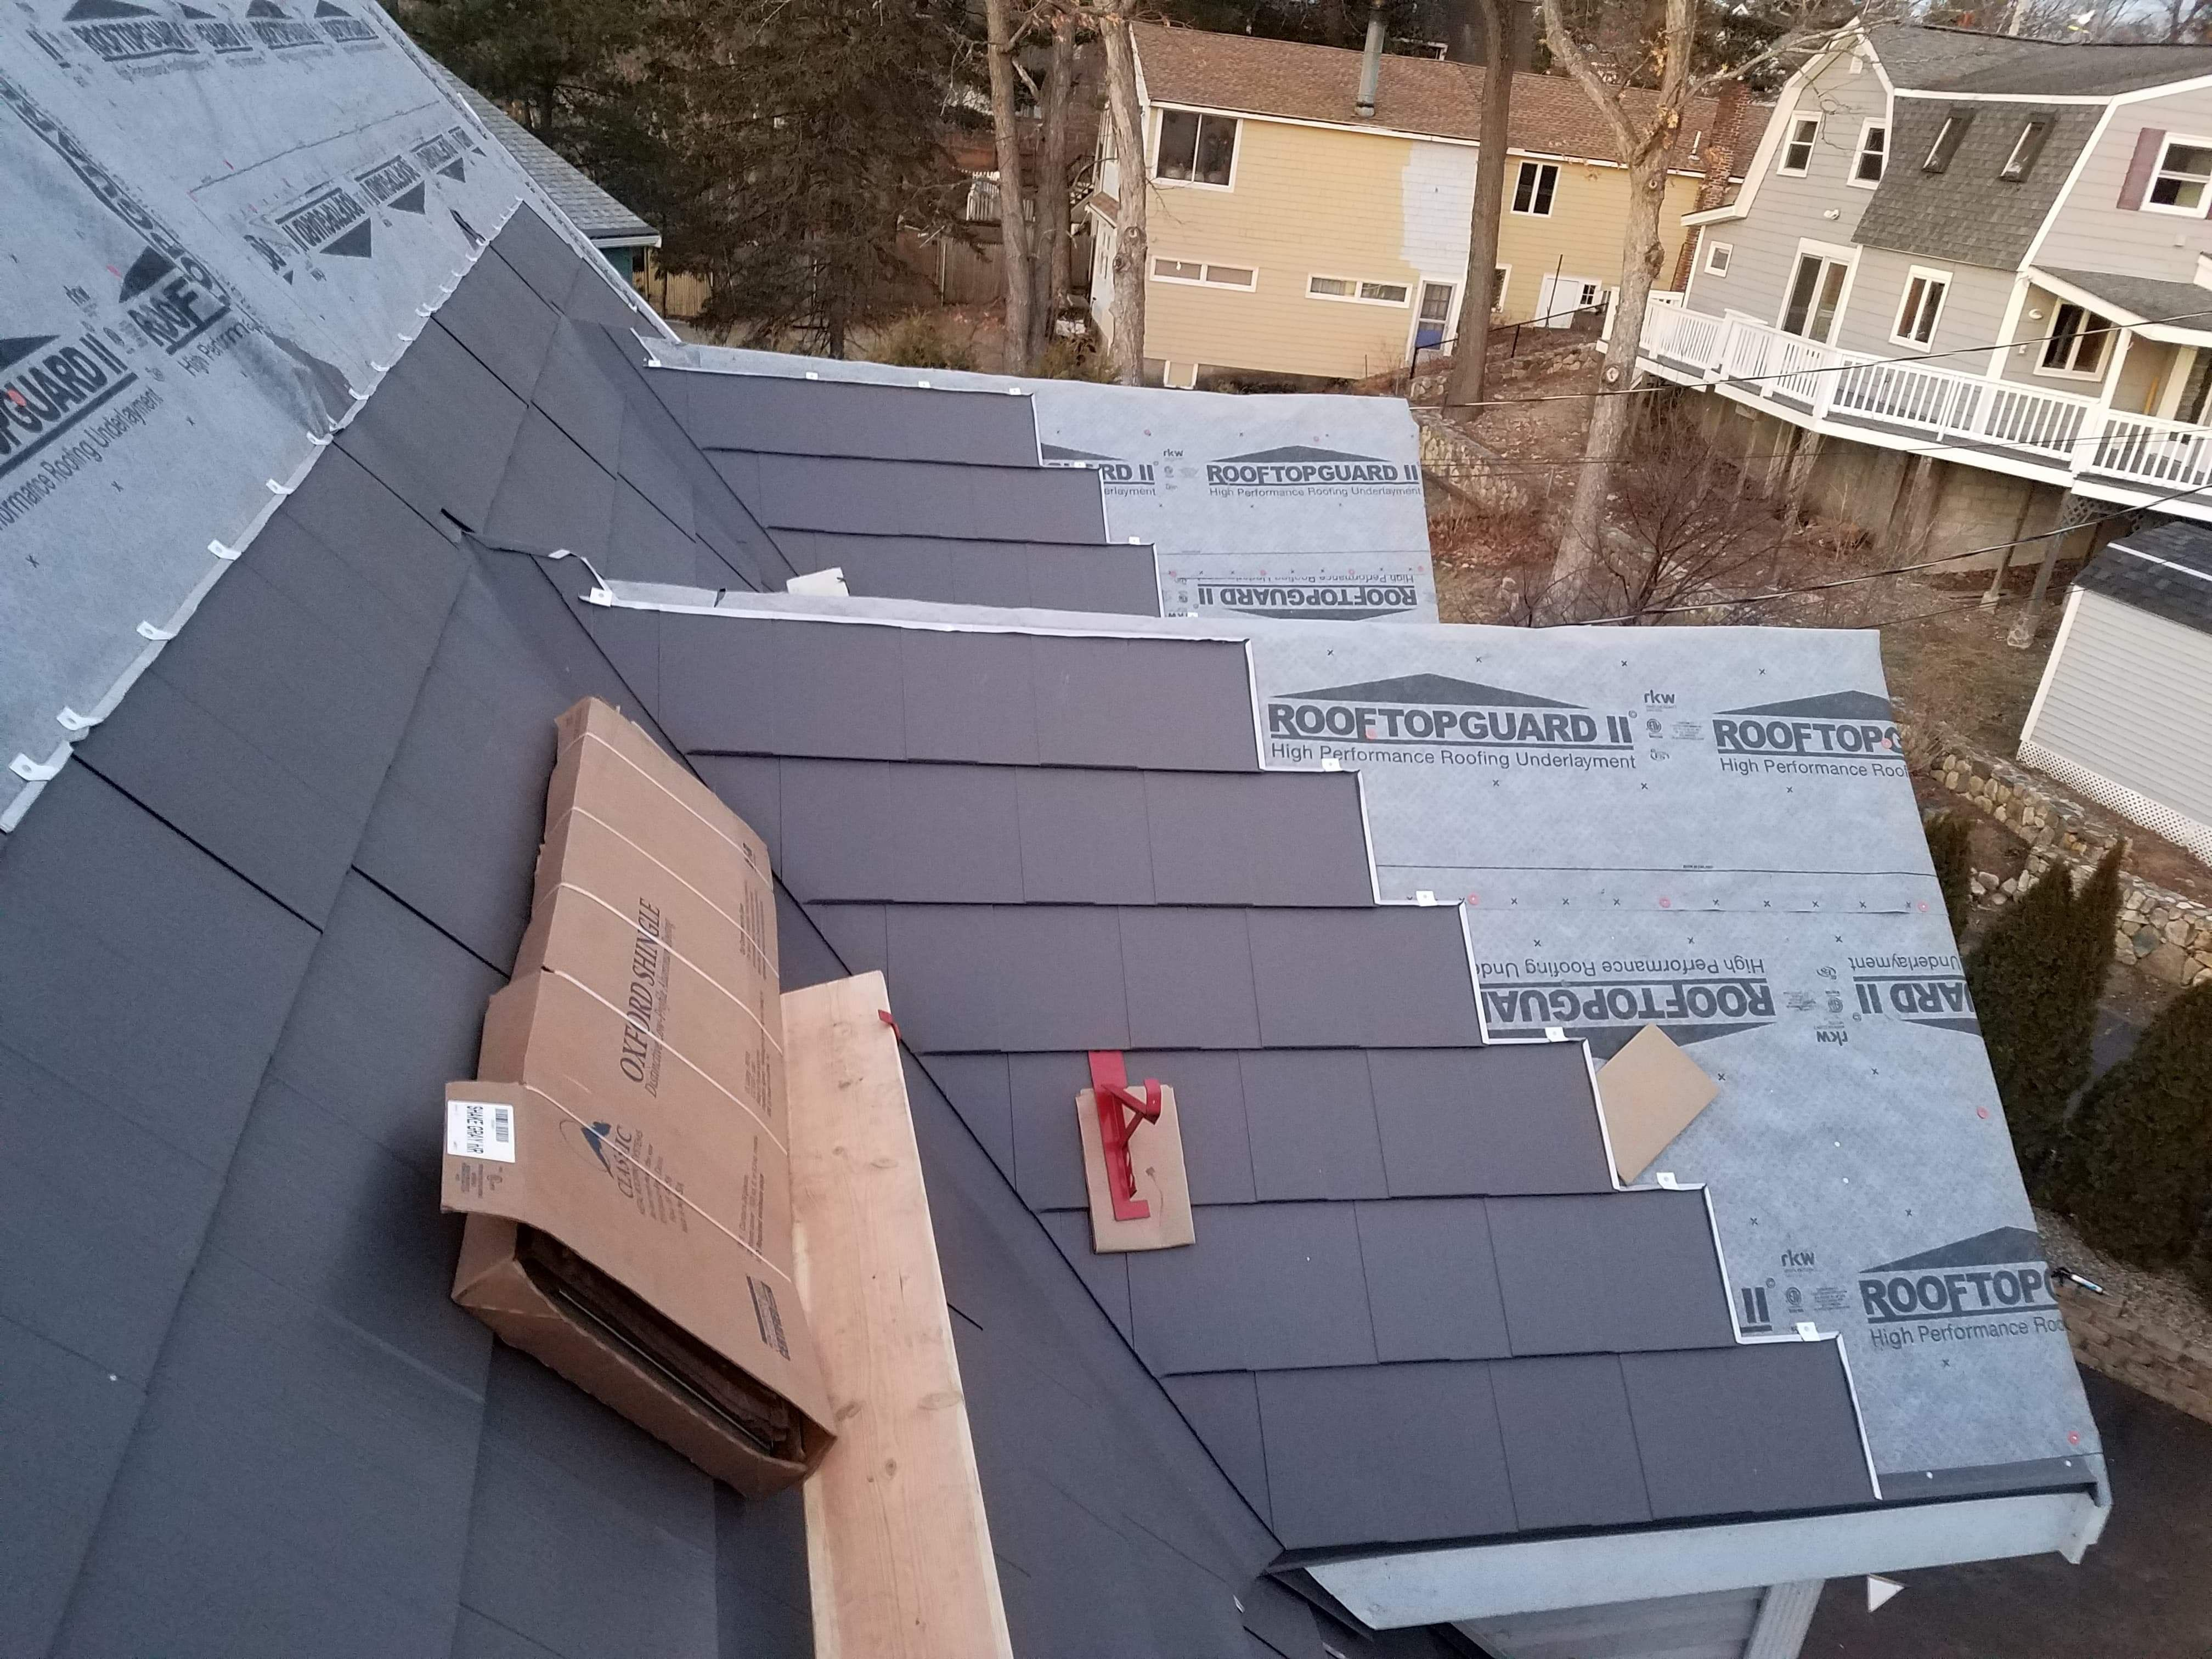 The Best Metal Shingle For Your Home Bar None Metal Shingles Metal Shingle Roof Shingling